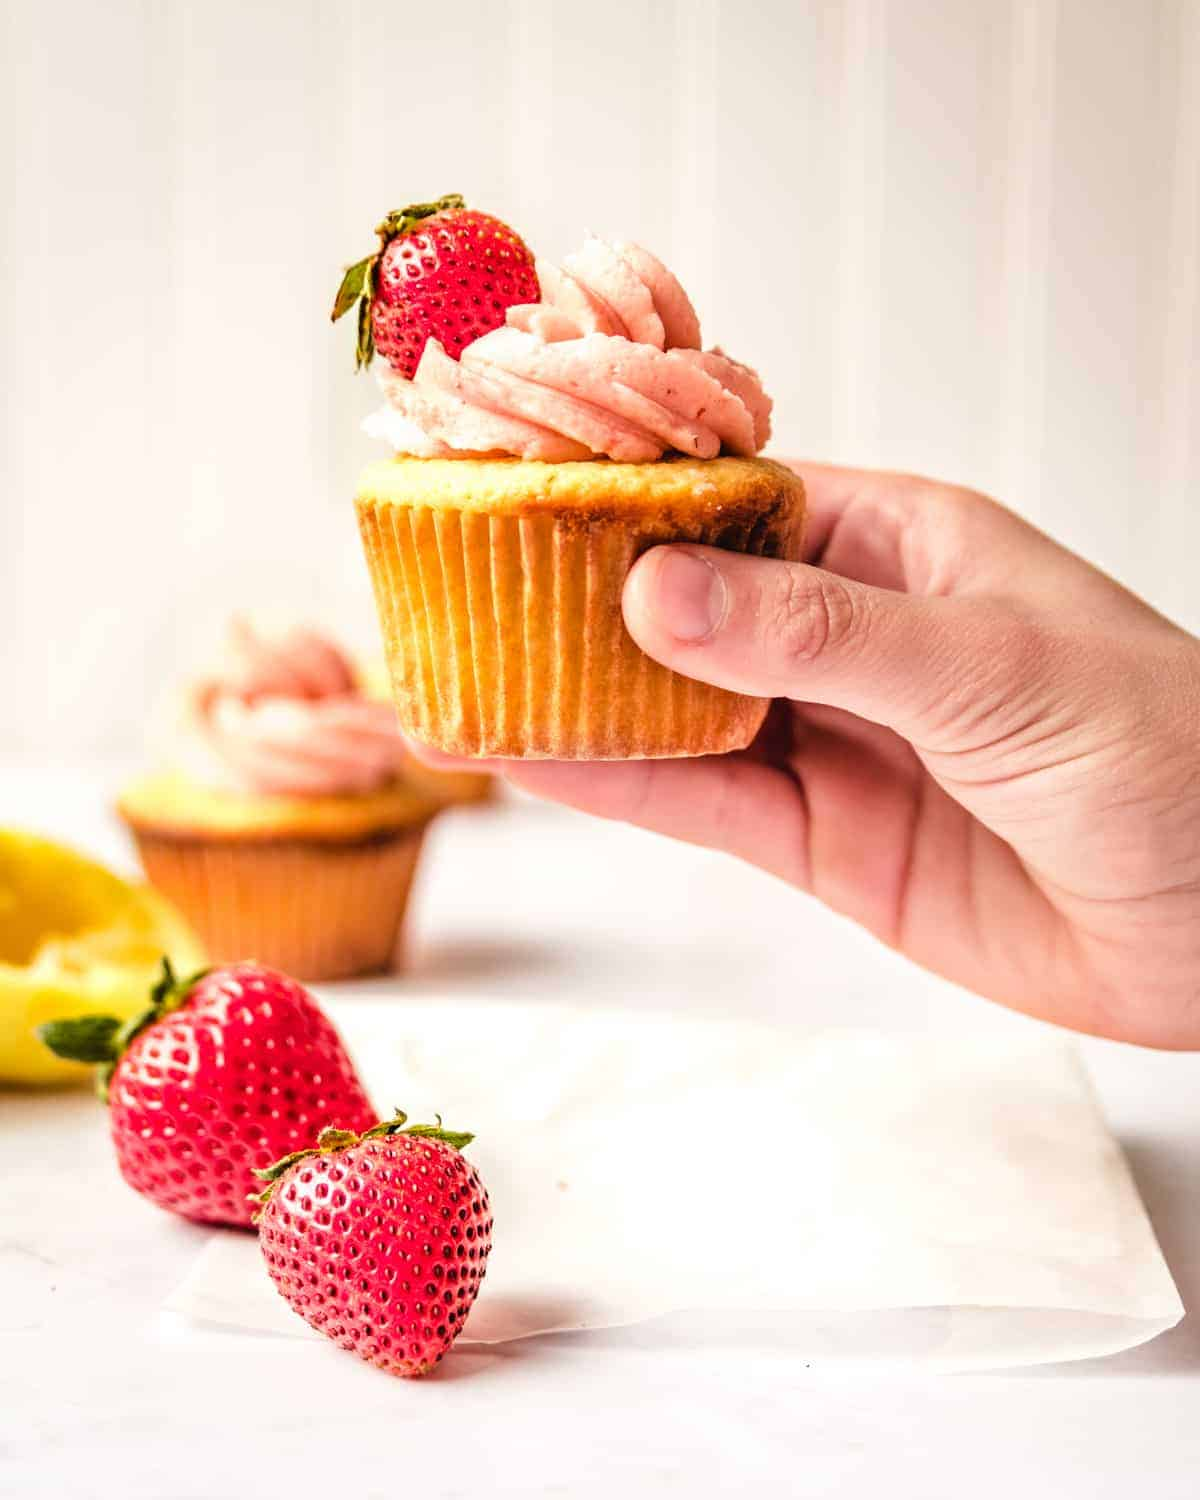 hand holding lemon cupcake with strawberry on top of frosting